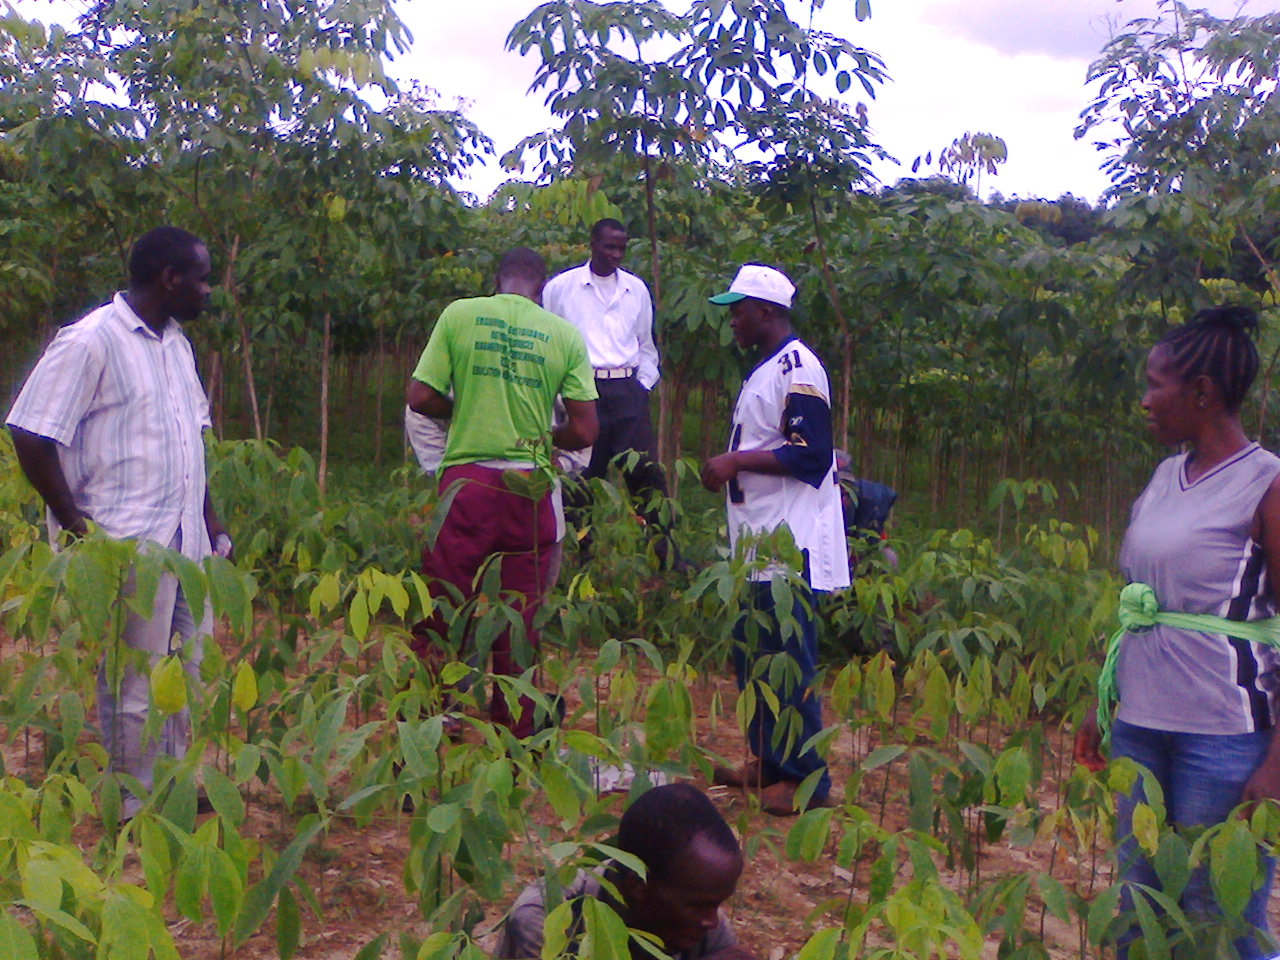 18 students of the Agriculture Department at the Nimba Commuinty College get practical knowledge about agriculture during a field trip to a rubber plantation in Nimba County